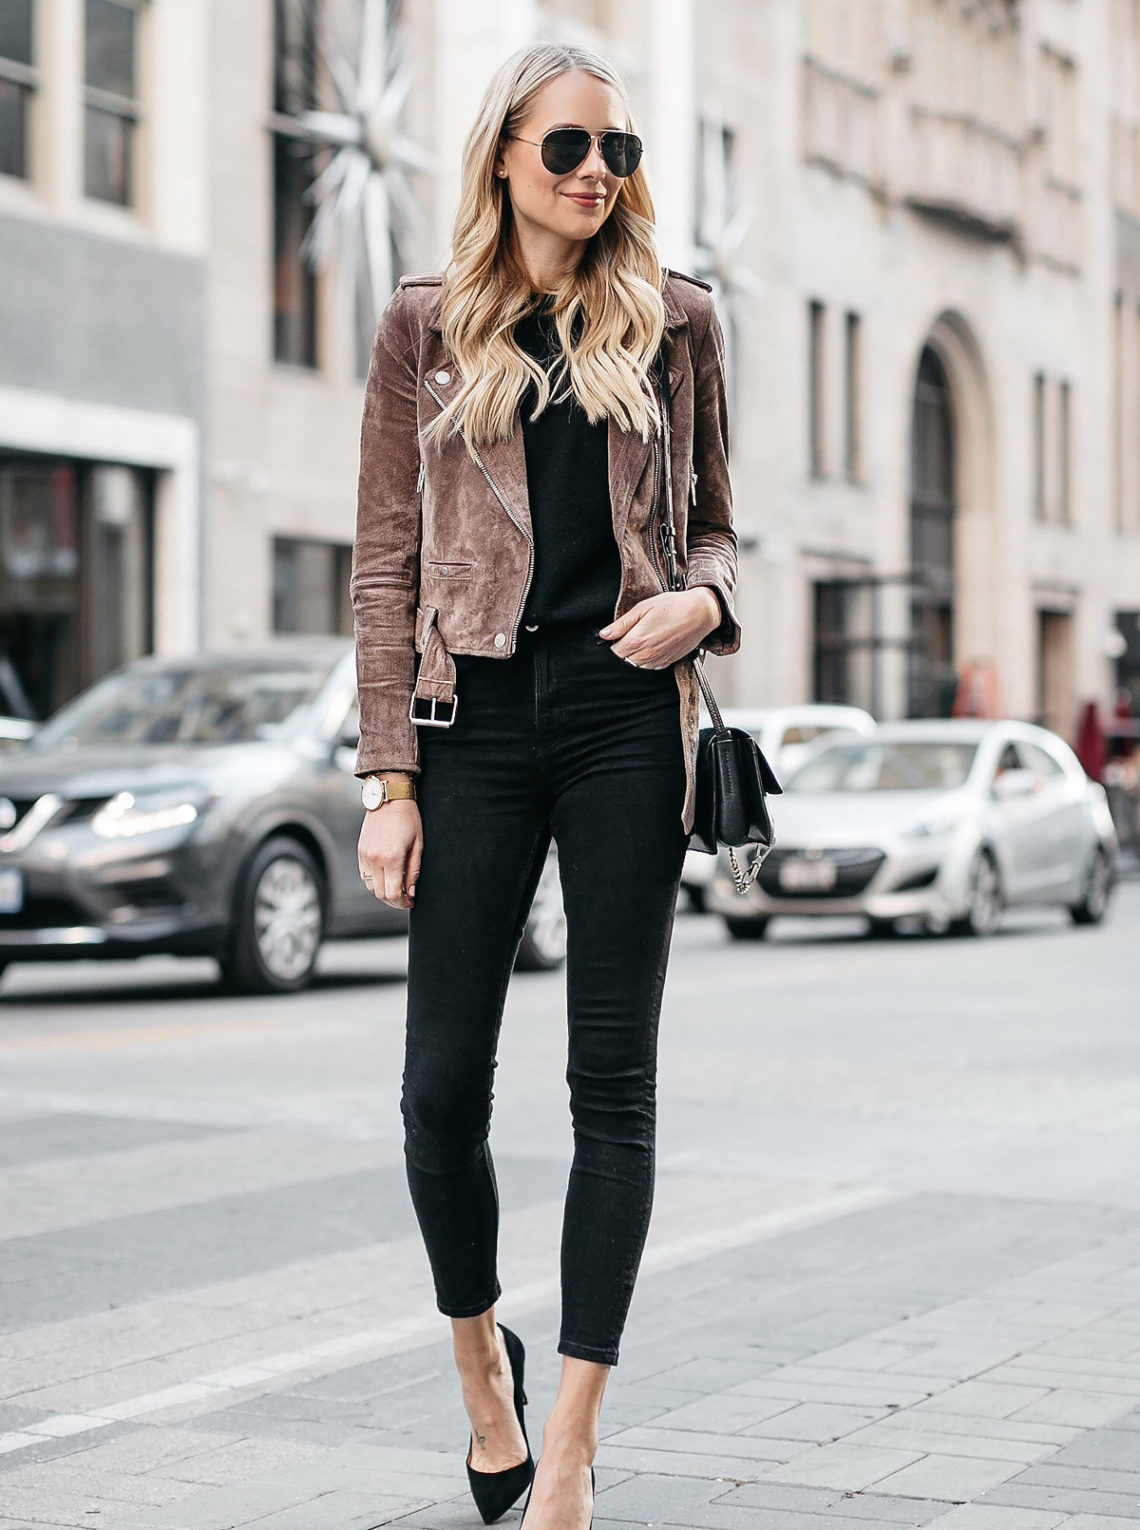 Blonde Woman Wearing Blanknyc Suede Moto Jacket Black Skinny Jeans Black Pumps Fashion Jackson Dallas Blogger Fashion Blogger Street Style